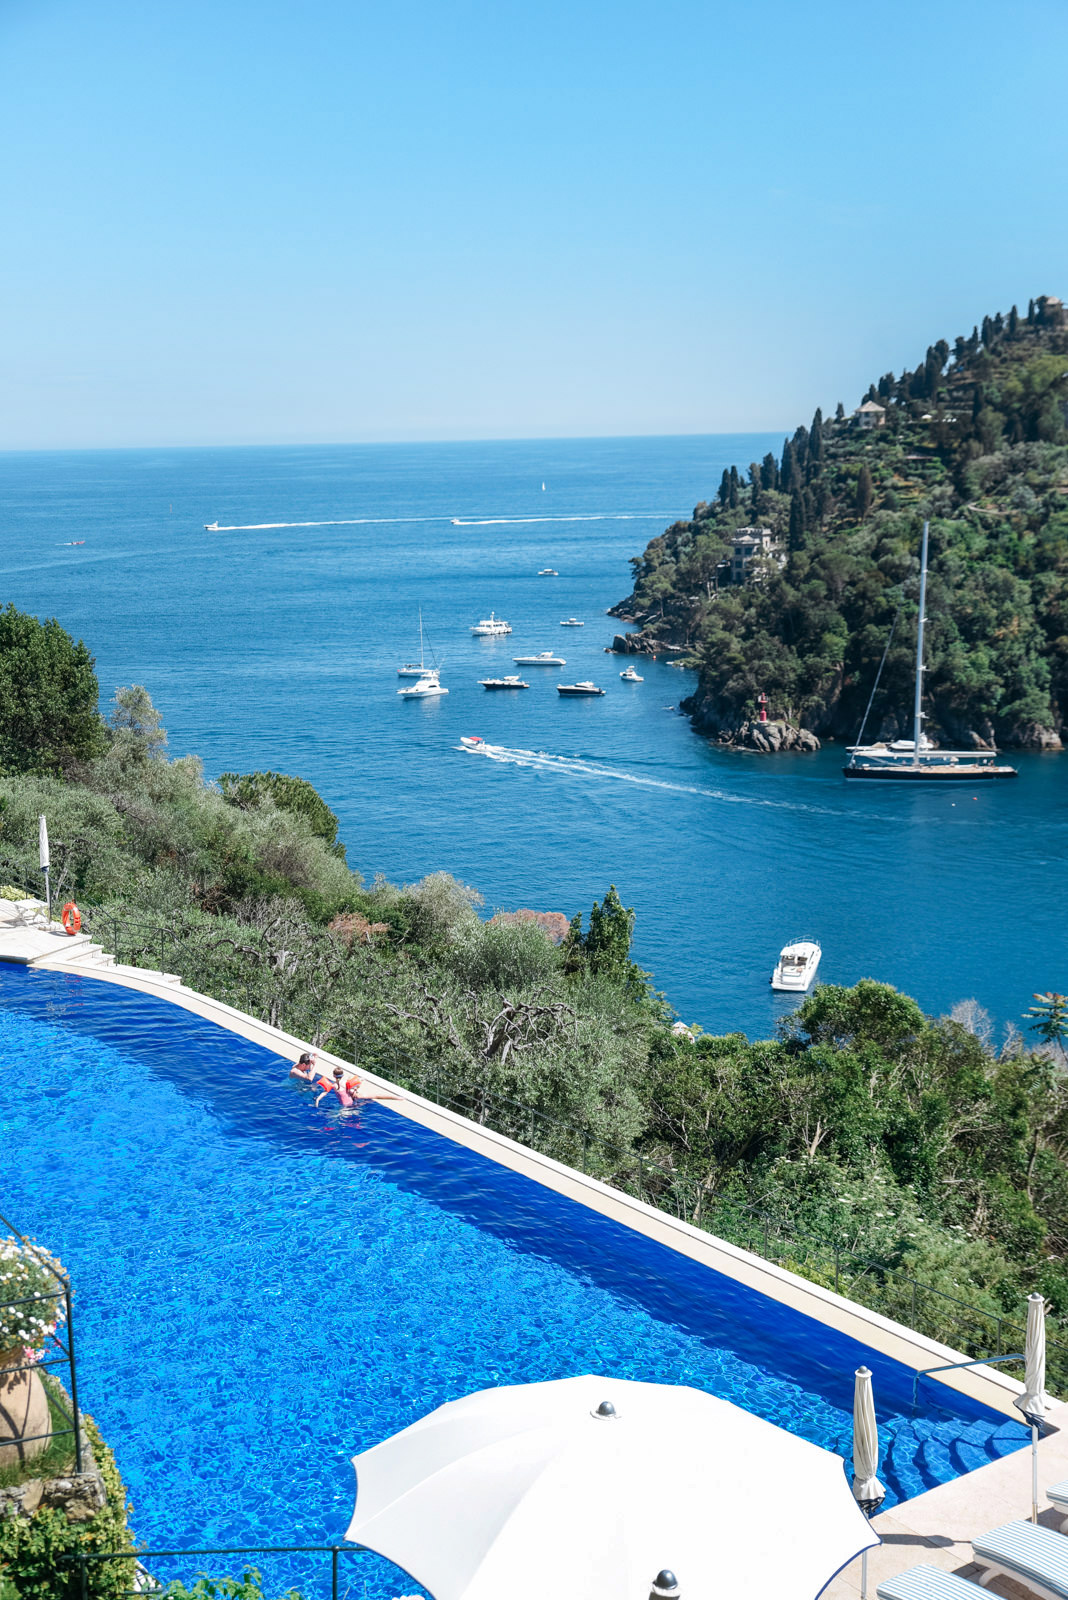 Blog-Mode-And-The-City-Lifestyle-Belmond-Hotel-6 copie